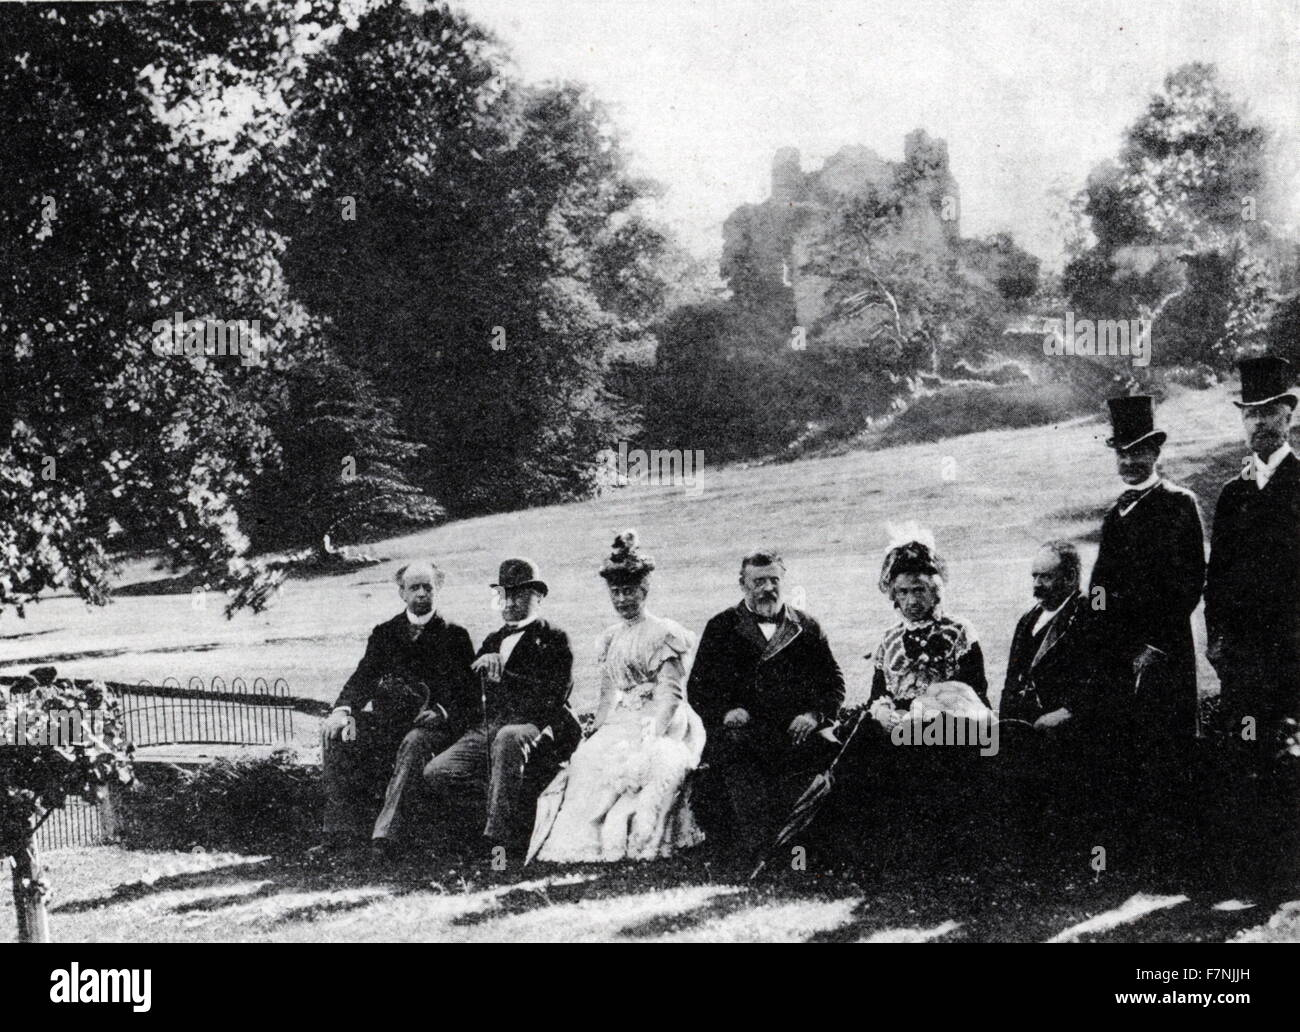 New Zealand Prime Minister Richard John Seddon 1897 At Hawarden Castle with British Prime Minister William Gladstone. - Stock Image